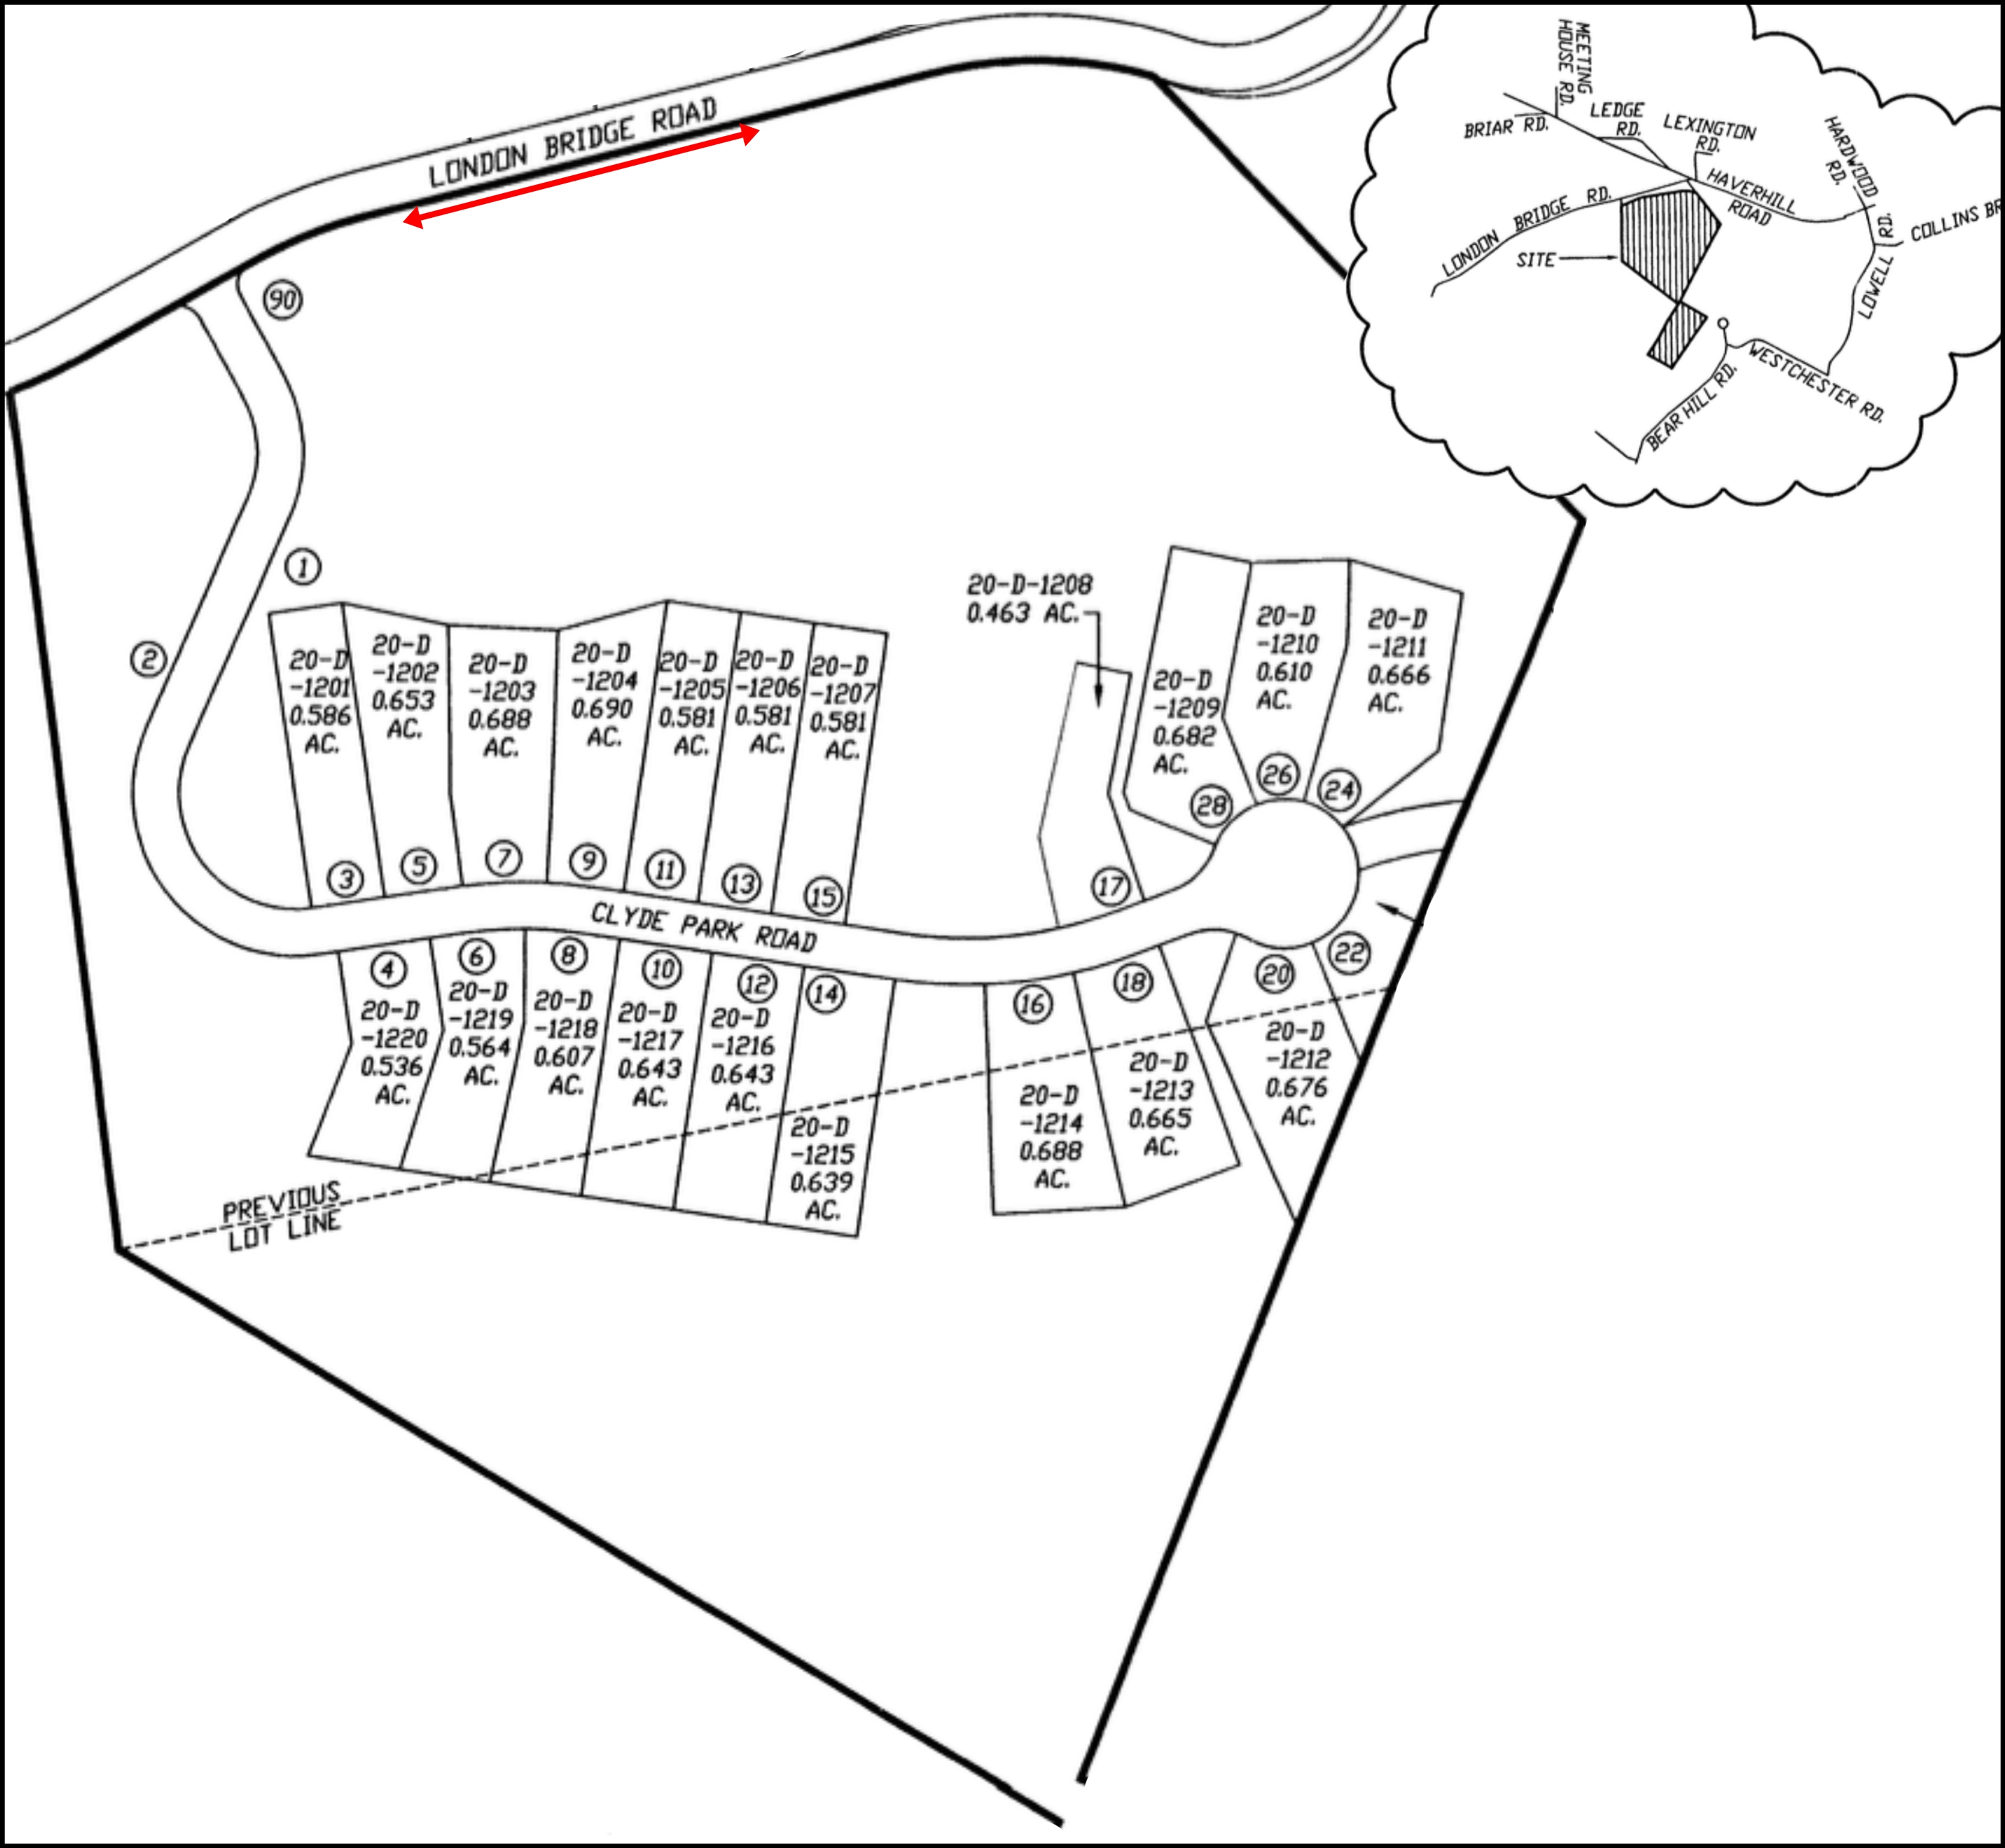 Clyde Pond Subdivision Plan Map Windham Nh